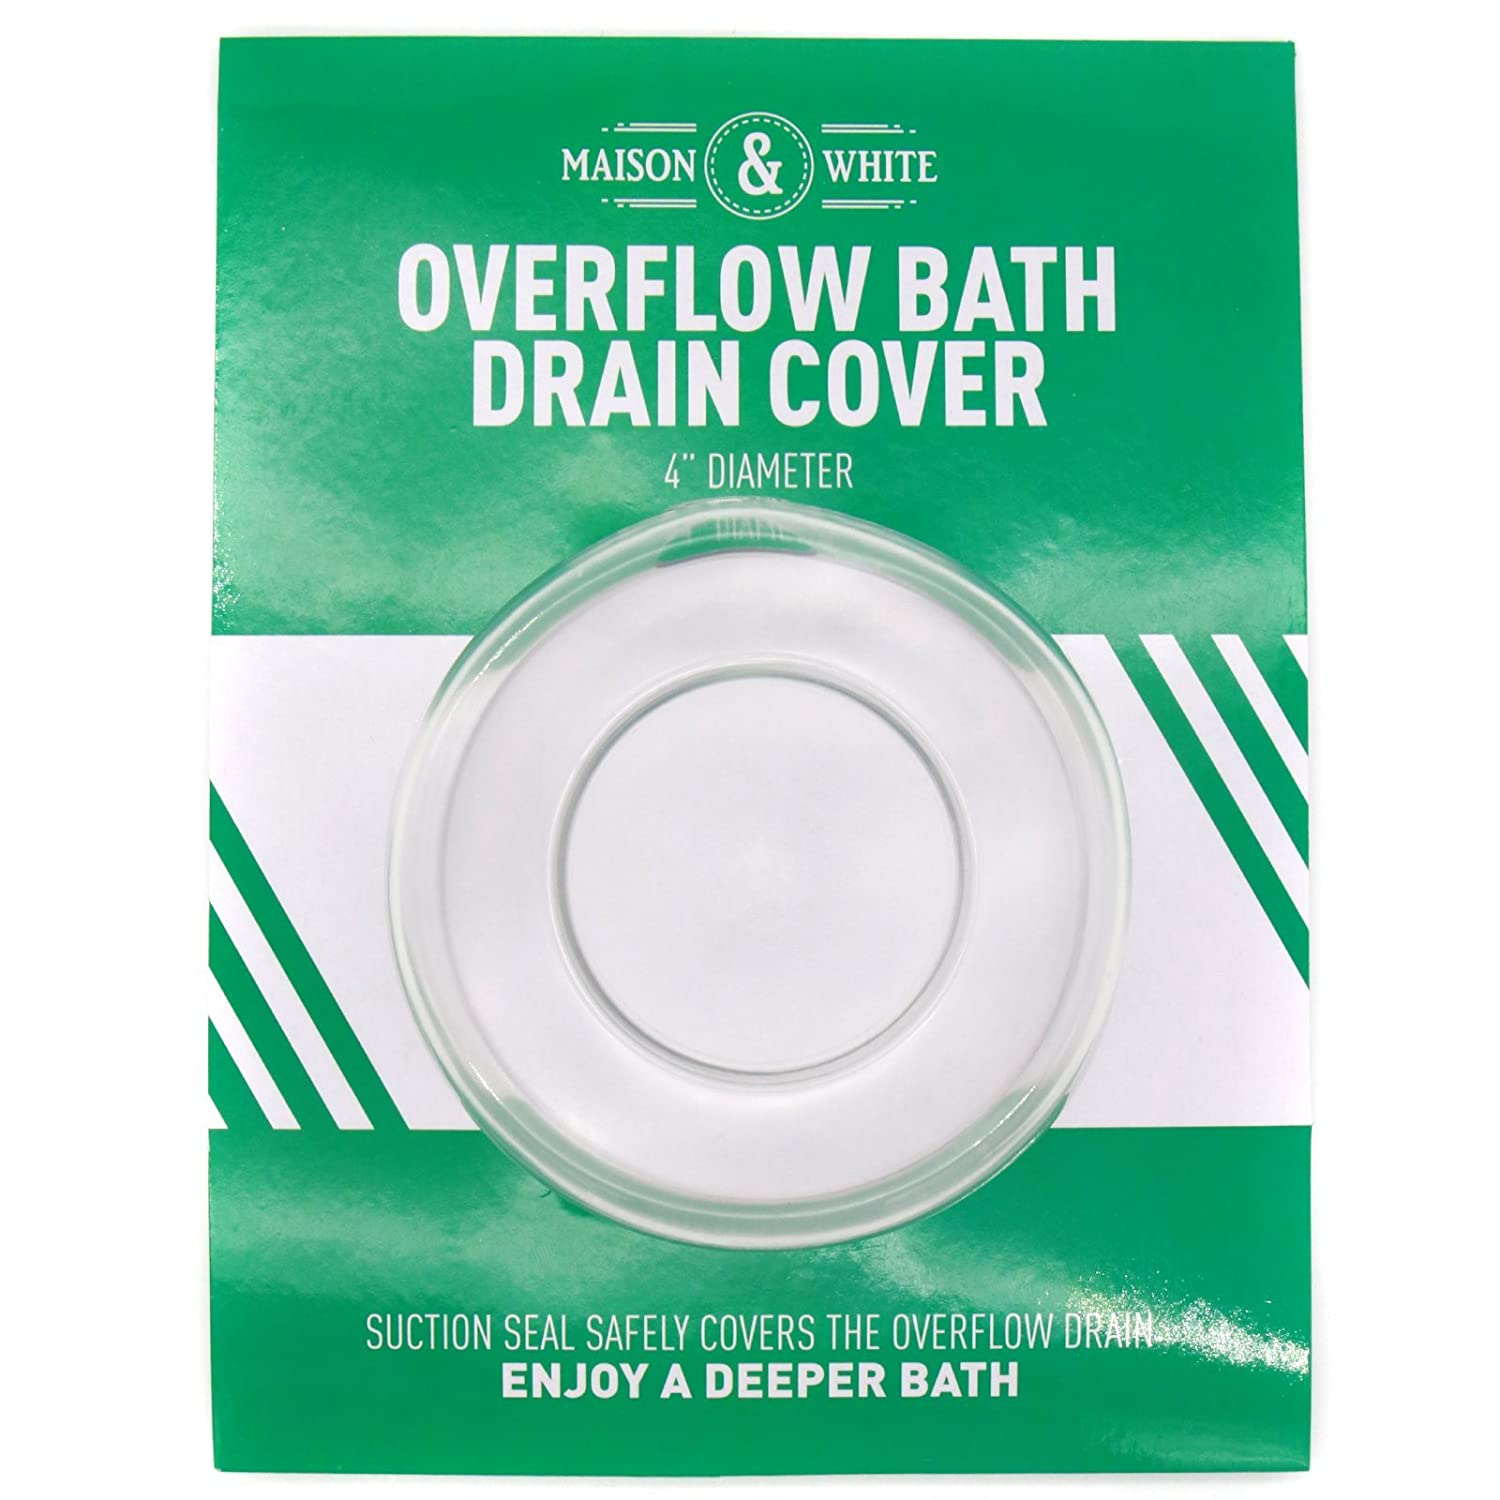 Bathtub Overflow Drain Cover | Safe Deeper Bath Plug | For a More Comfortable Bathing Experience | Universal Design for All Bath's | M&W Xbite